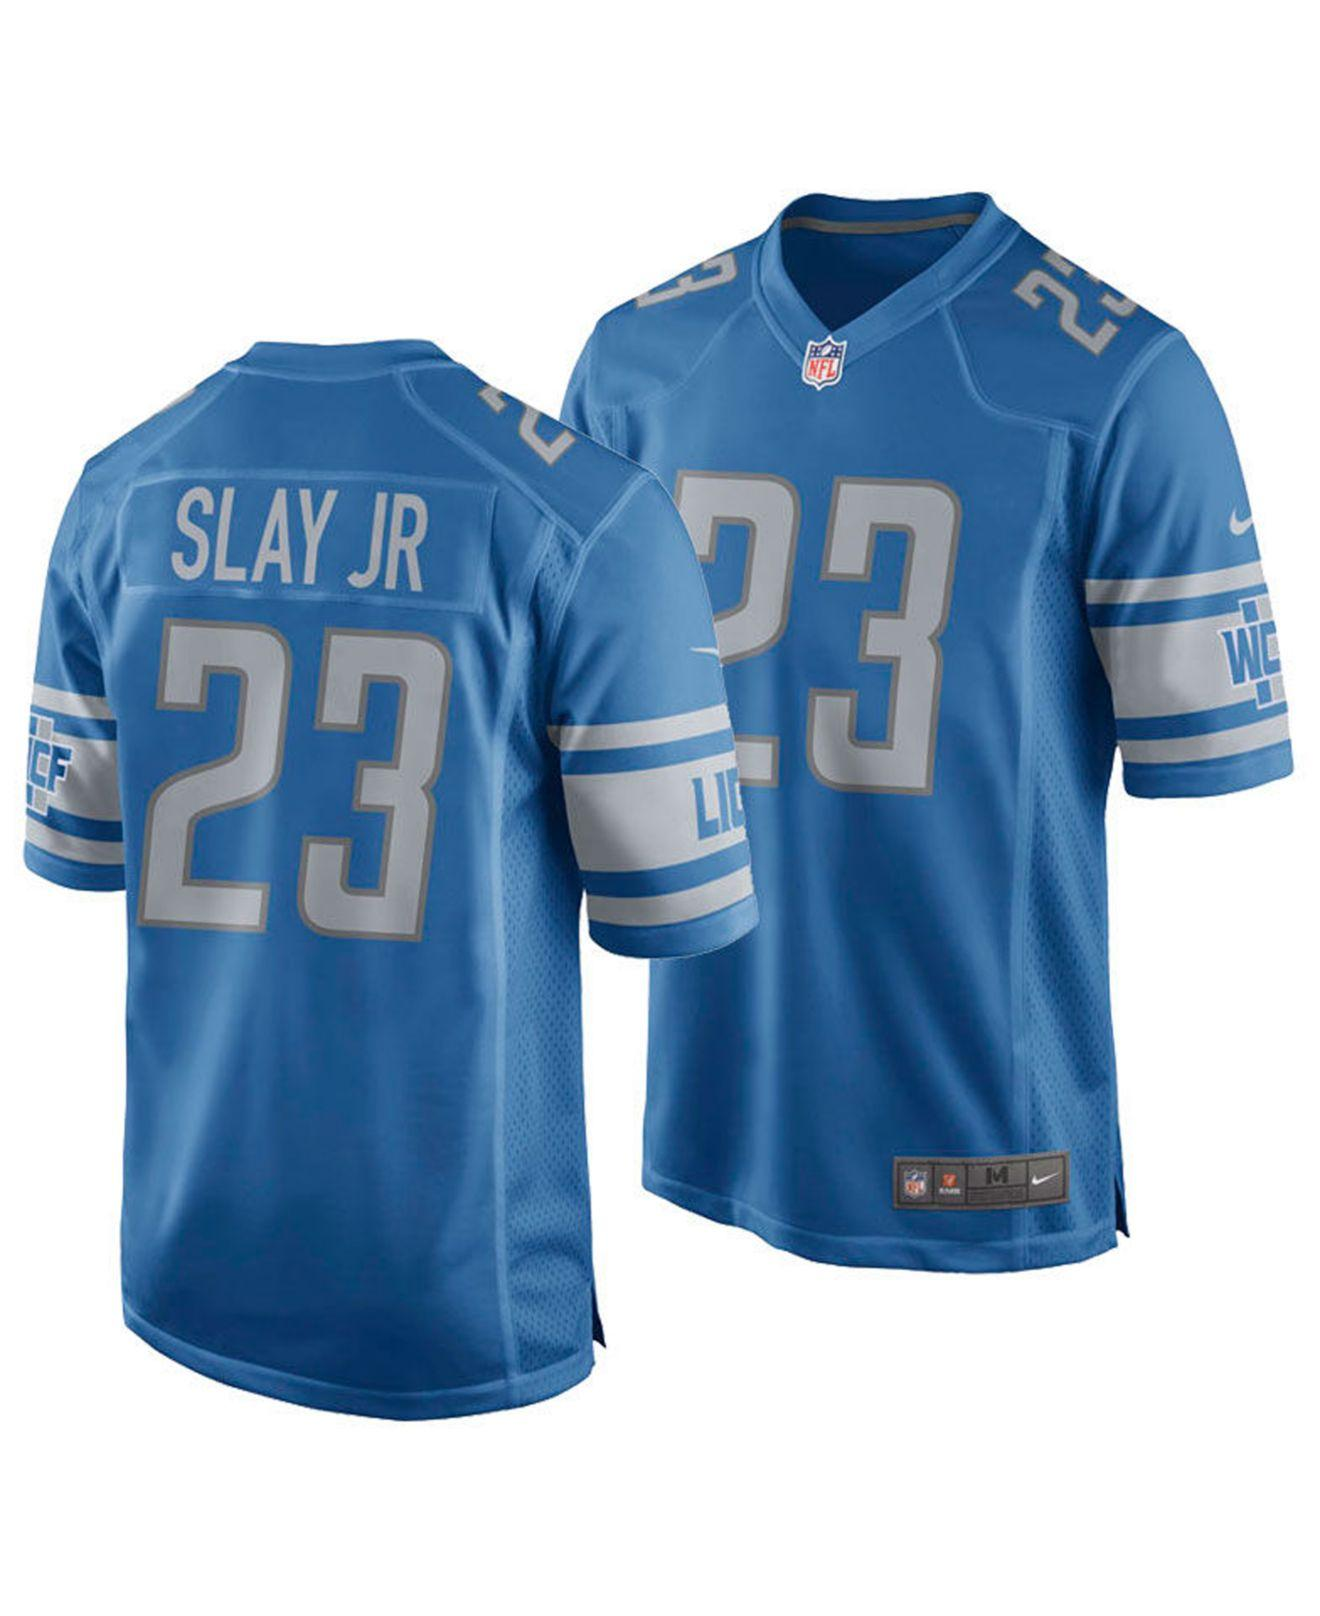 Nike - Blue Darius Slay Jr. Detroit Lions Game Jersey for Men - Lyst. View  fullscreen bd4941a59